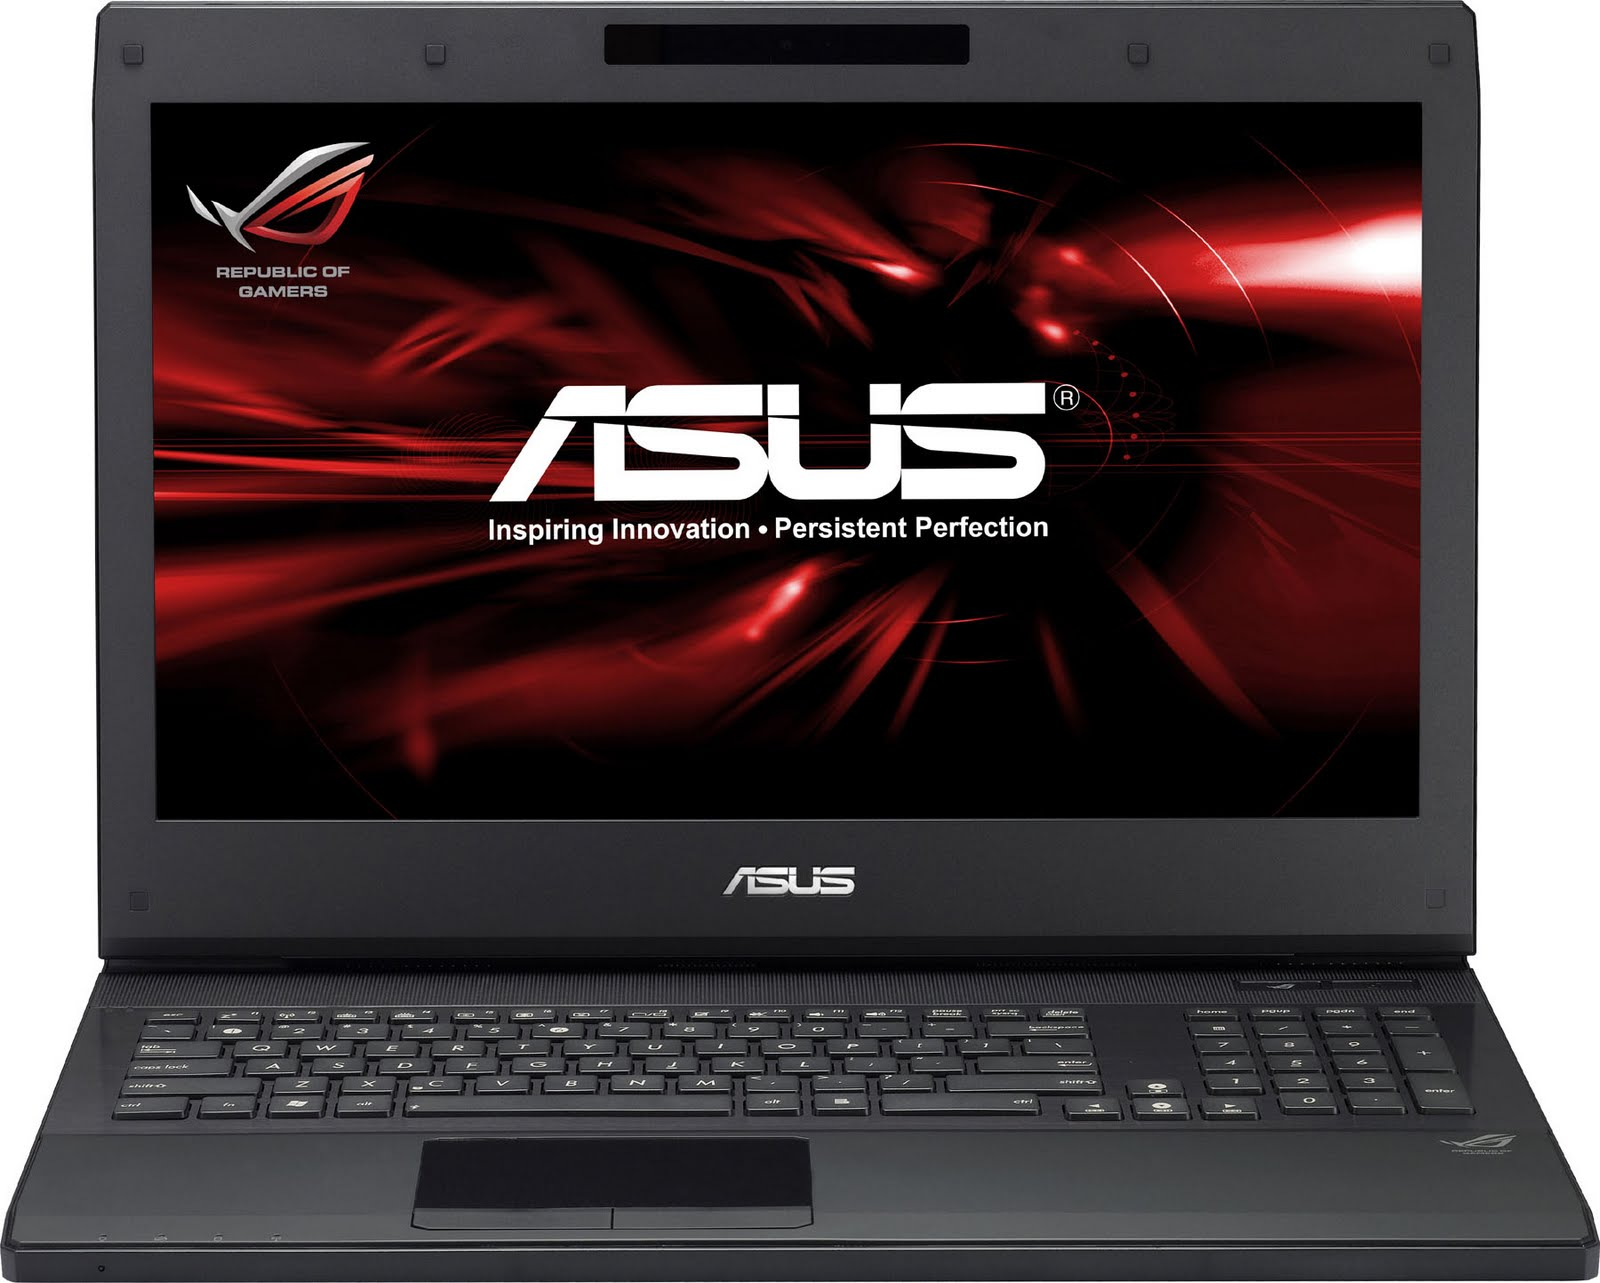 laptop reviews latest asus new g74sx a1 17 3 inch nvidia gaming